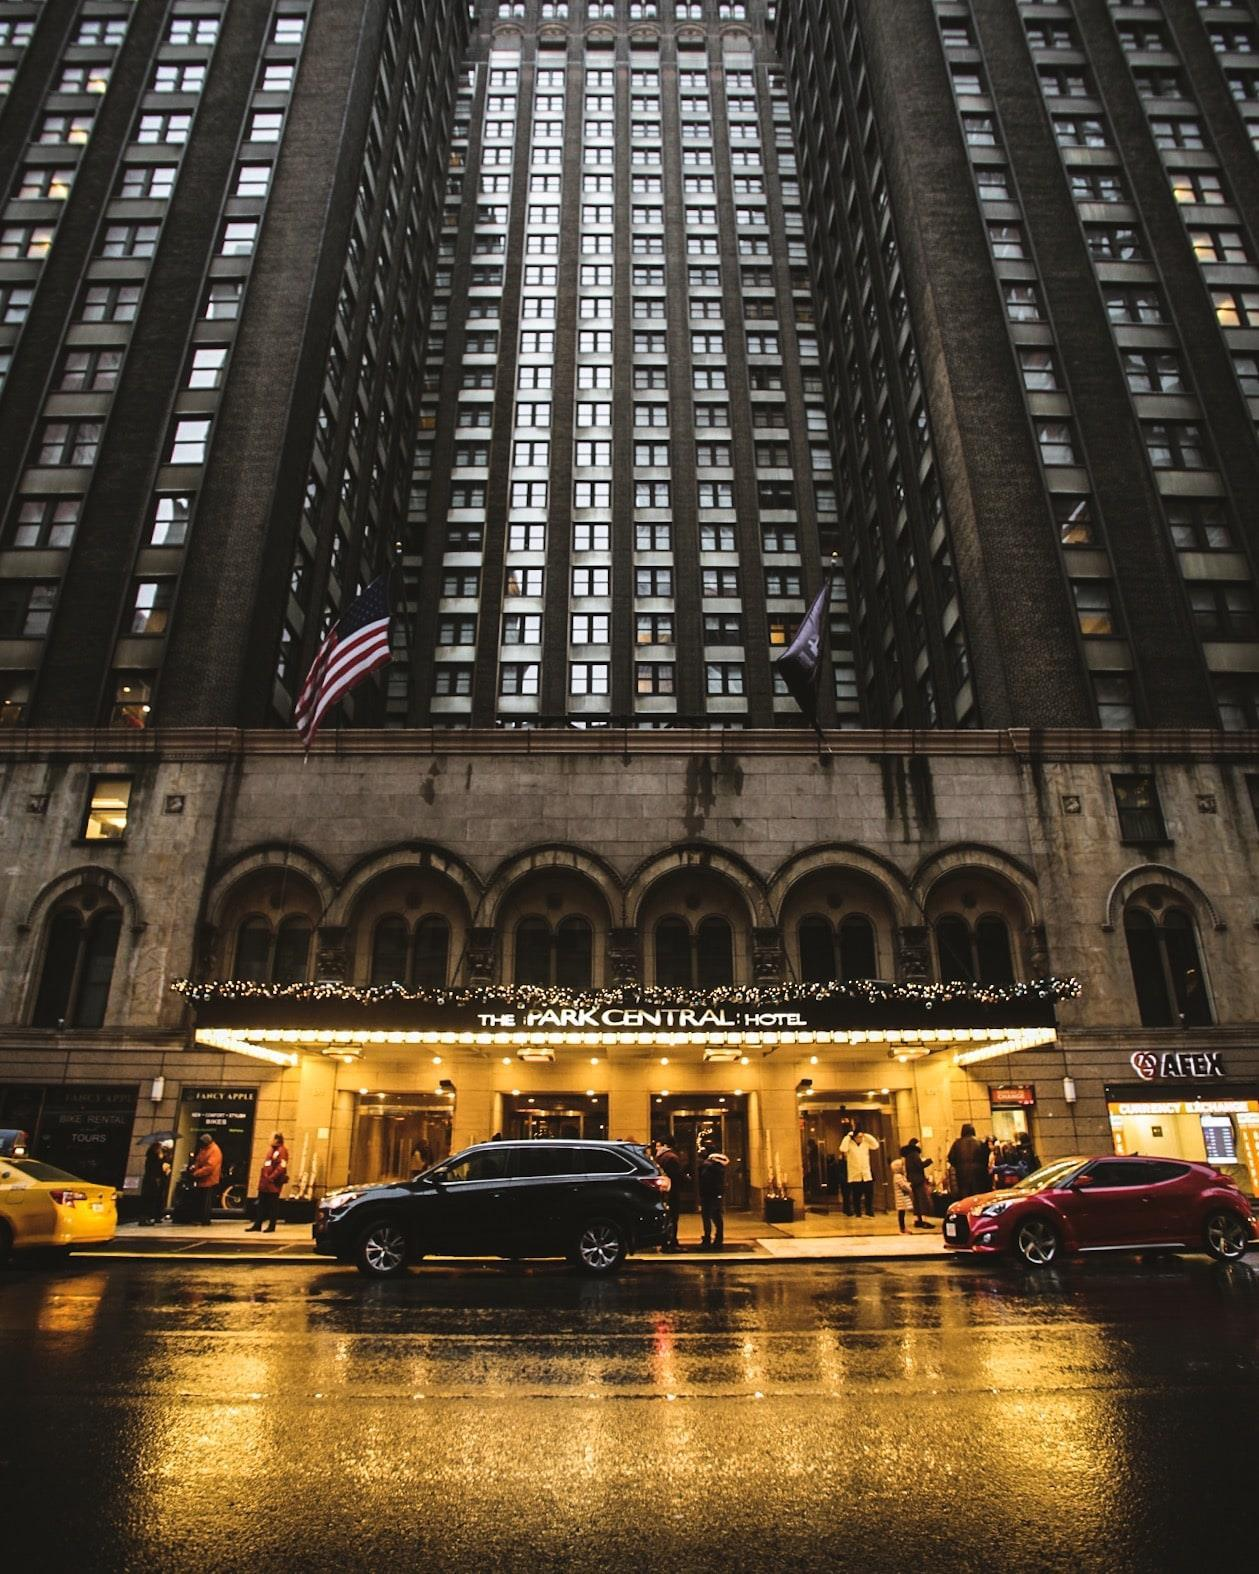 Park Central Hotel New York New York Ny United States Compare Deals